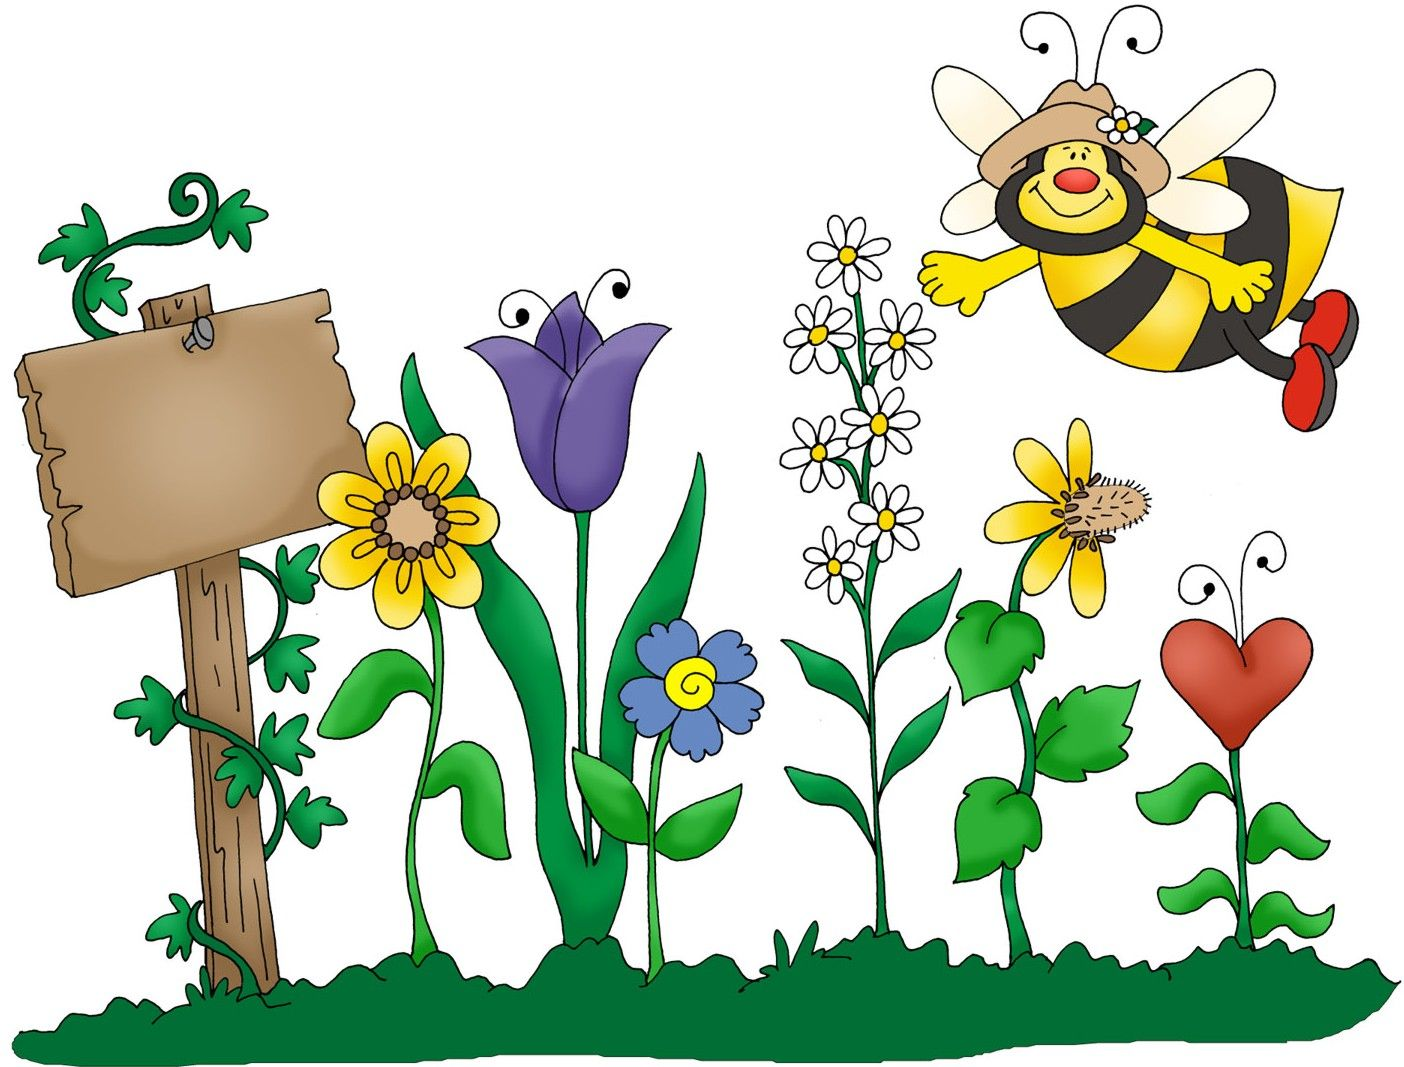 gardening clipart free clipart images clipartix garden club rh pinterest com free clip art photos microsoft free clipart photoshop